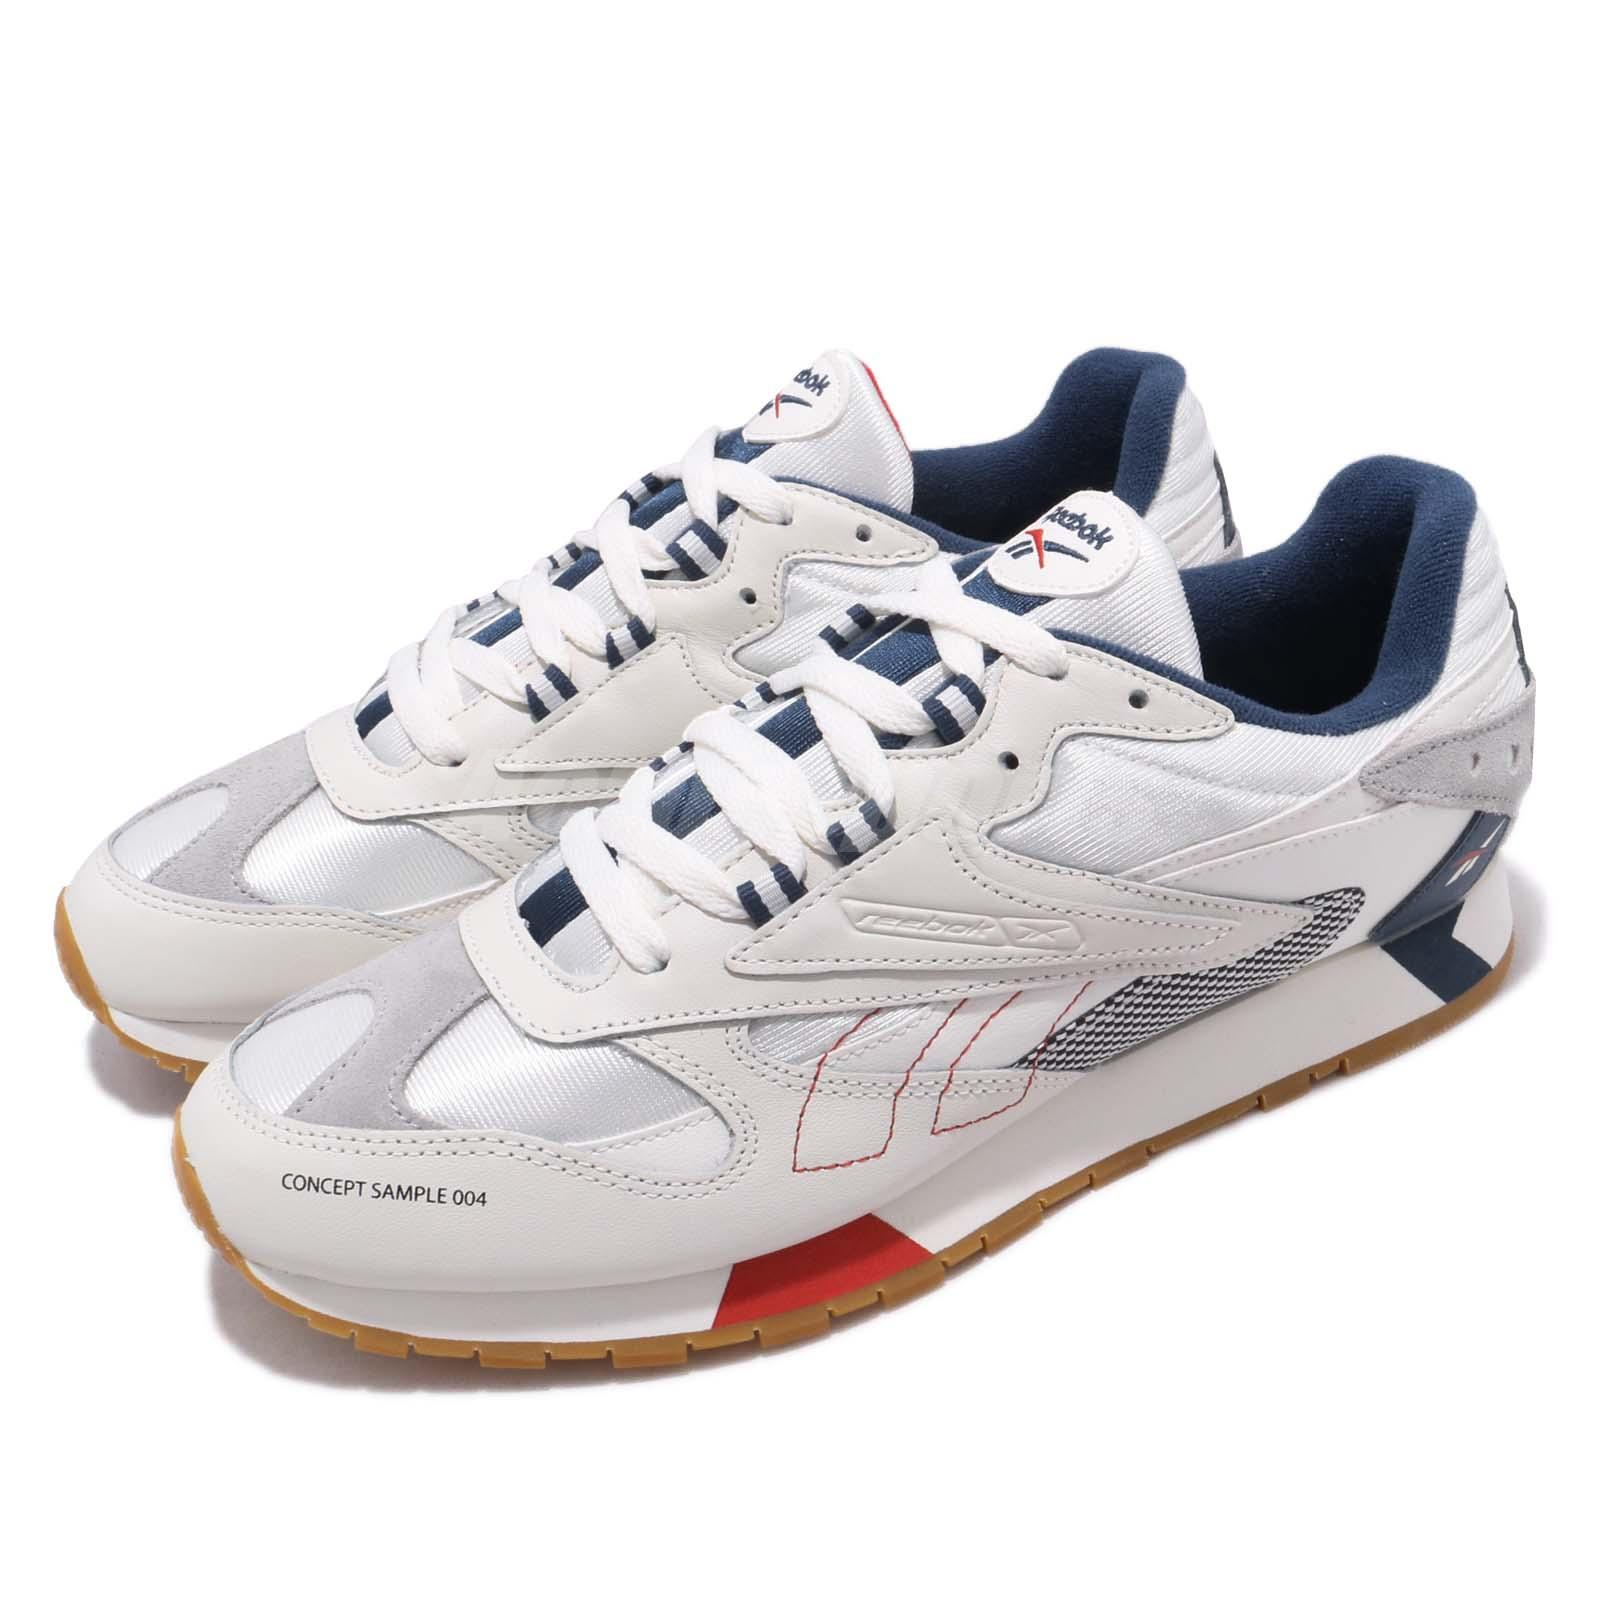 7a4c1810c721 Details about Reebok CL LTHR ATI 90s Chalk Grey Blue Red Gum Men Running  Shoes Sneakers DV5372